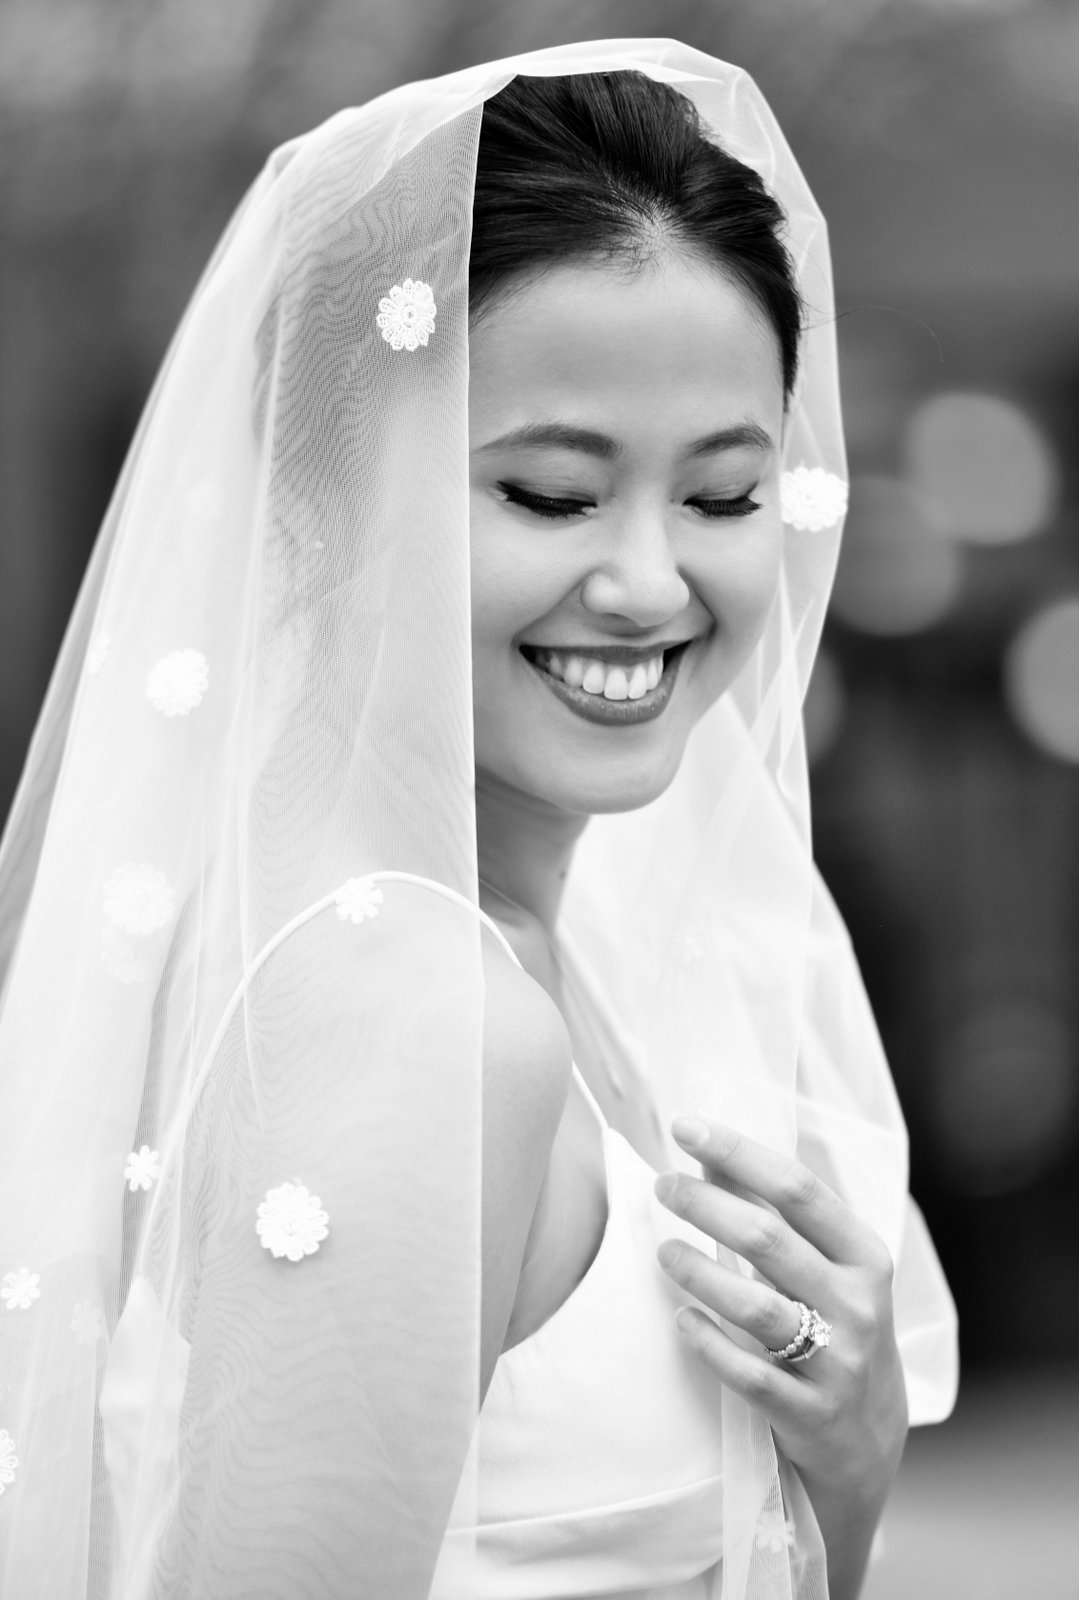 Wedding photography, Ali G Studios